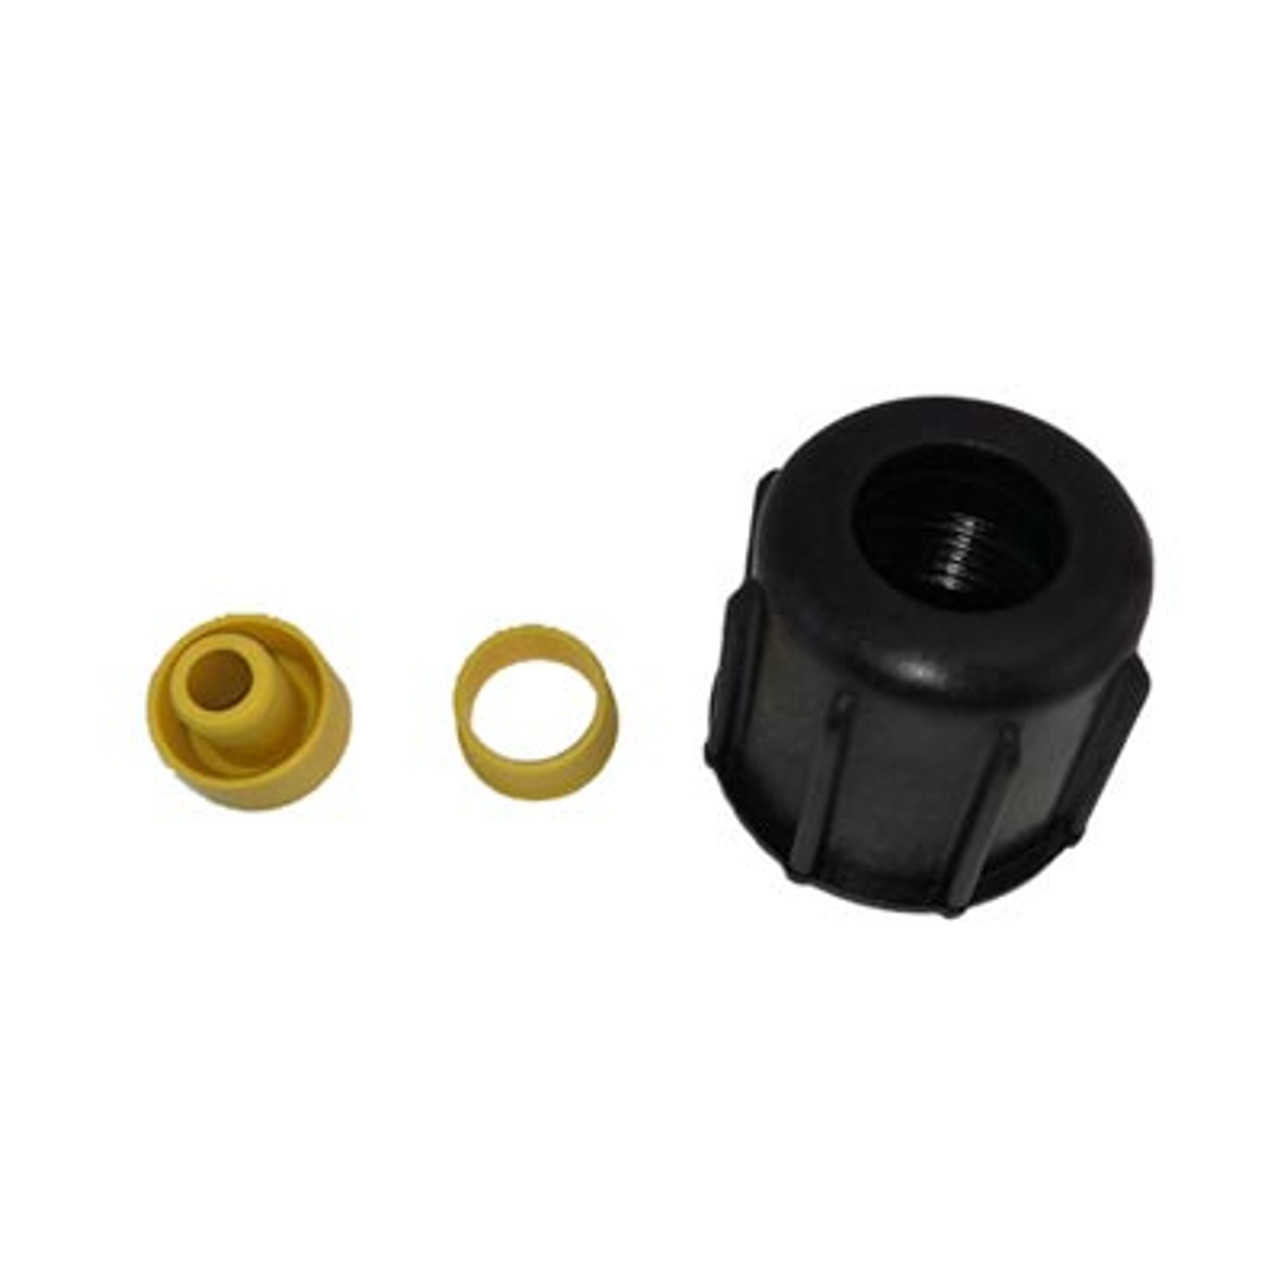 LMI Tubing Connection Kit 1//4 older style nut and ferrule